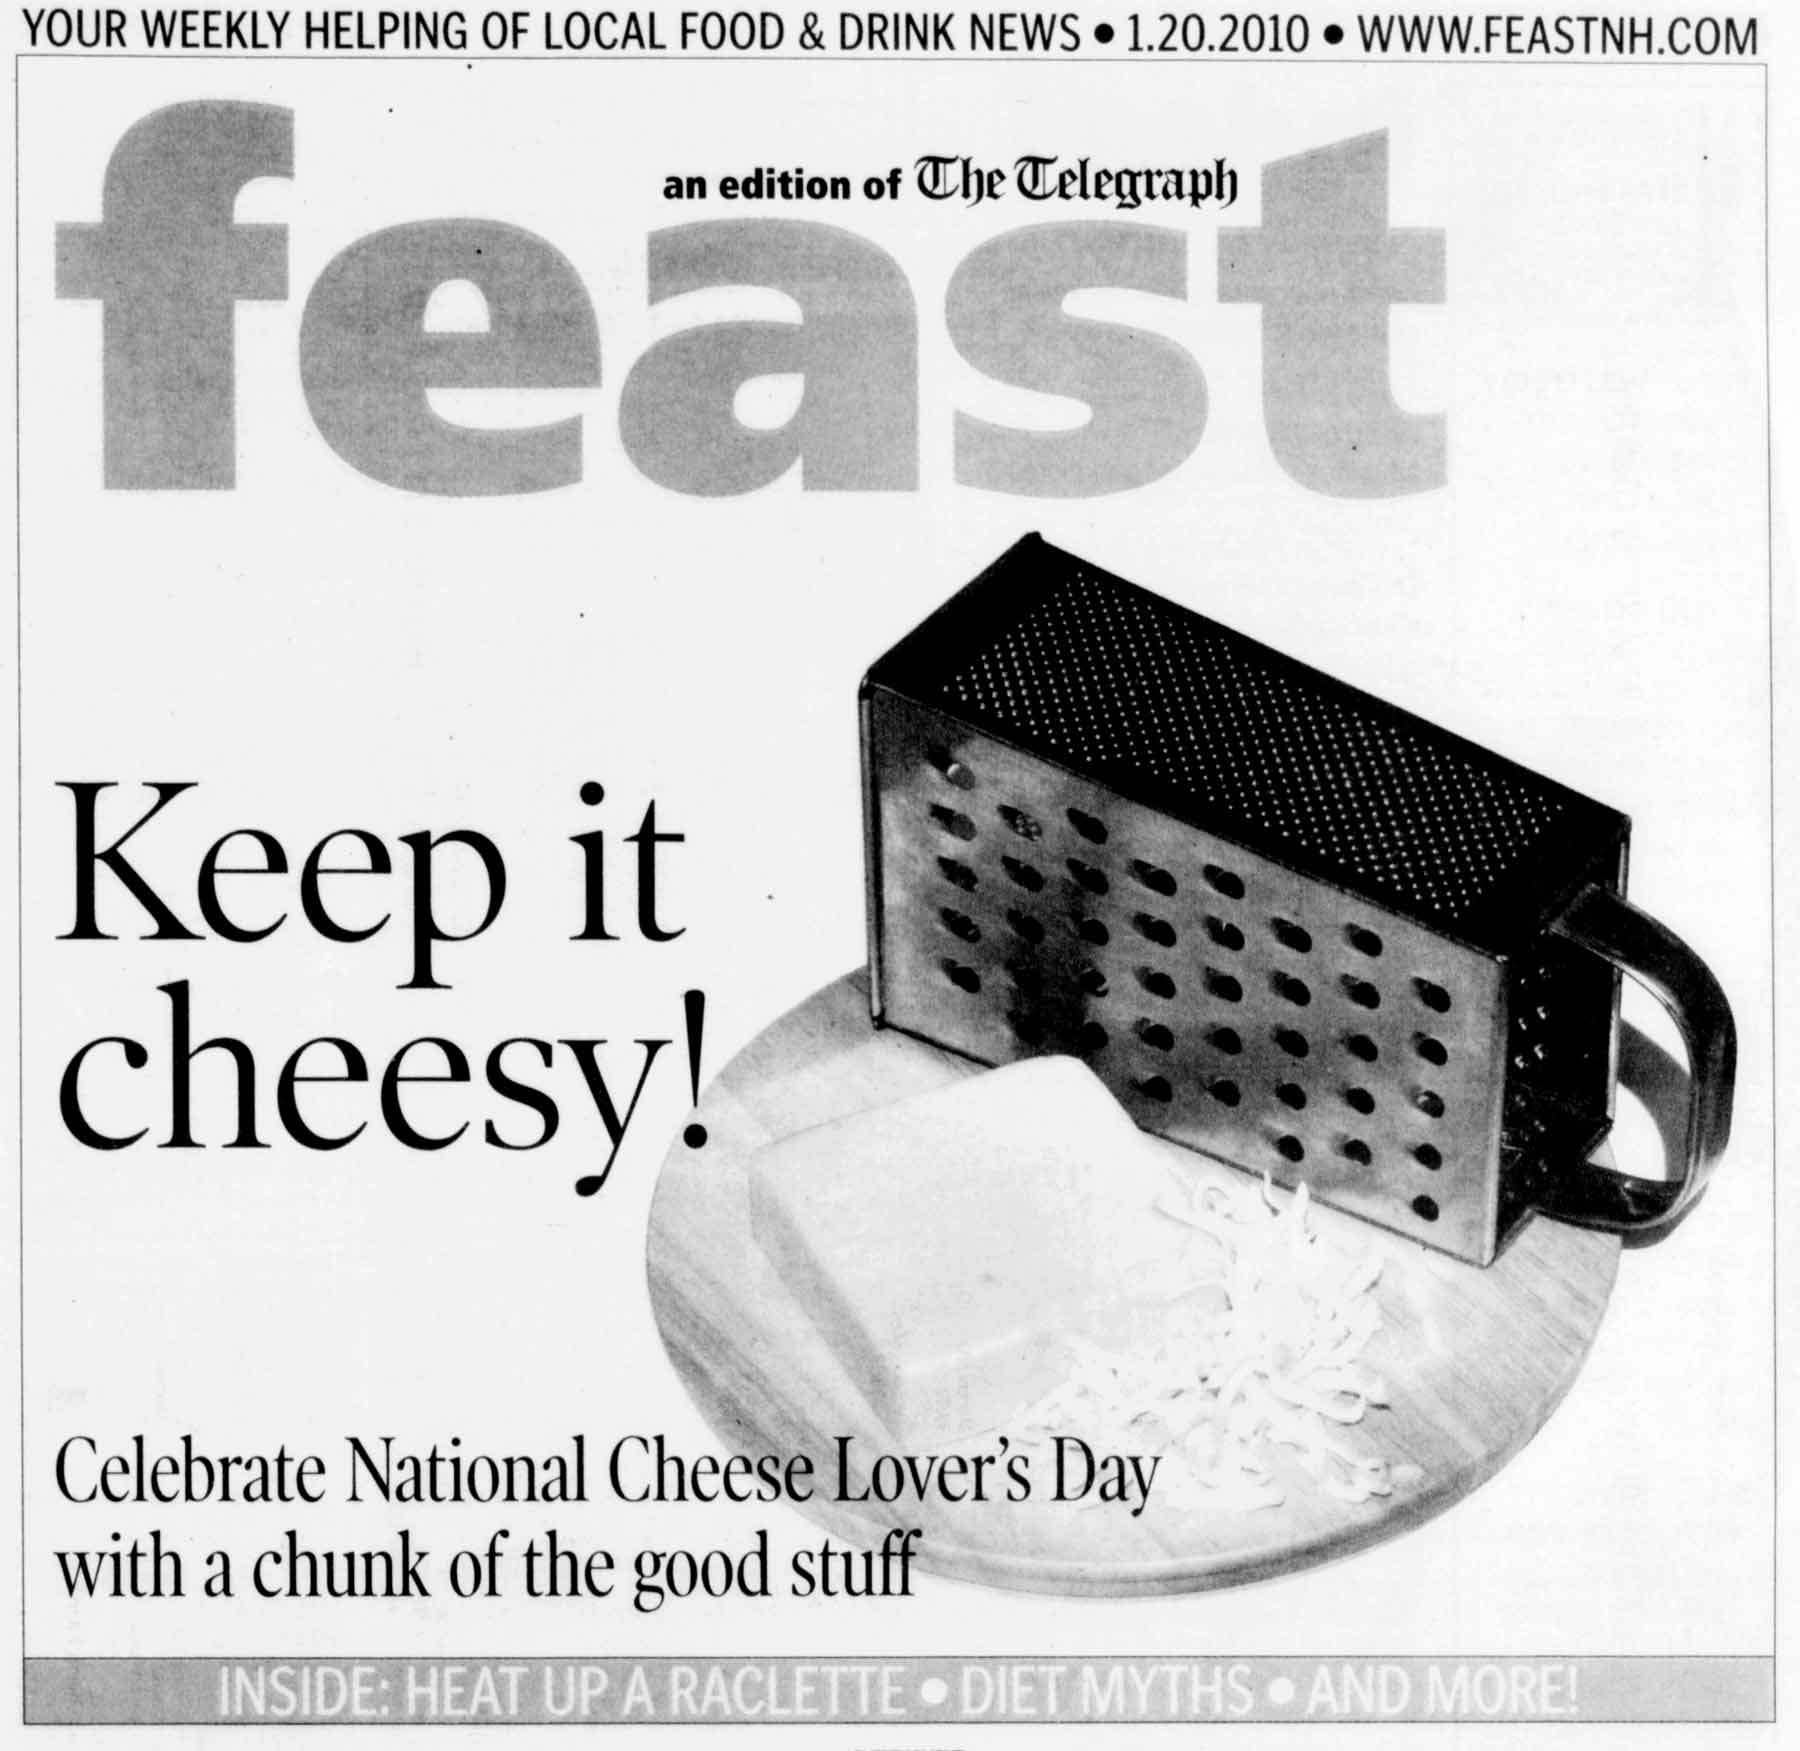 Cheese Lover's Day ad